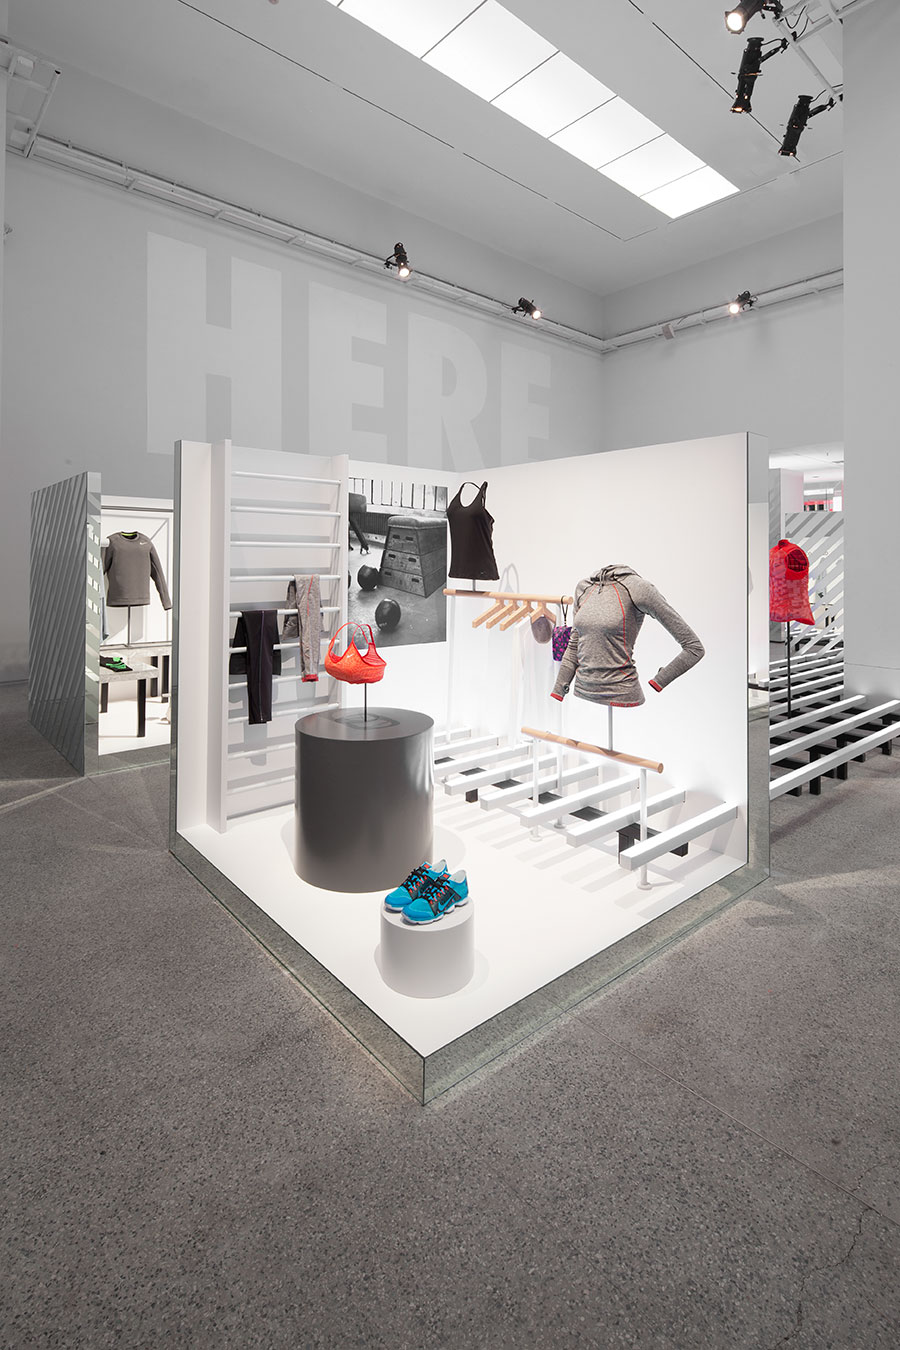 Exhibition Stand Fitter Jobs : Nike studio beijing coordination asia 协调